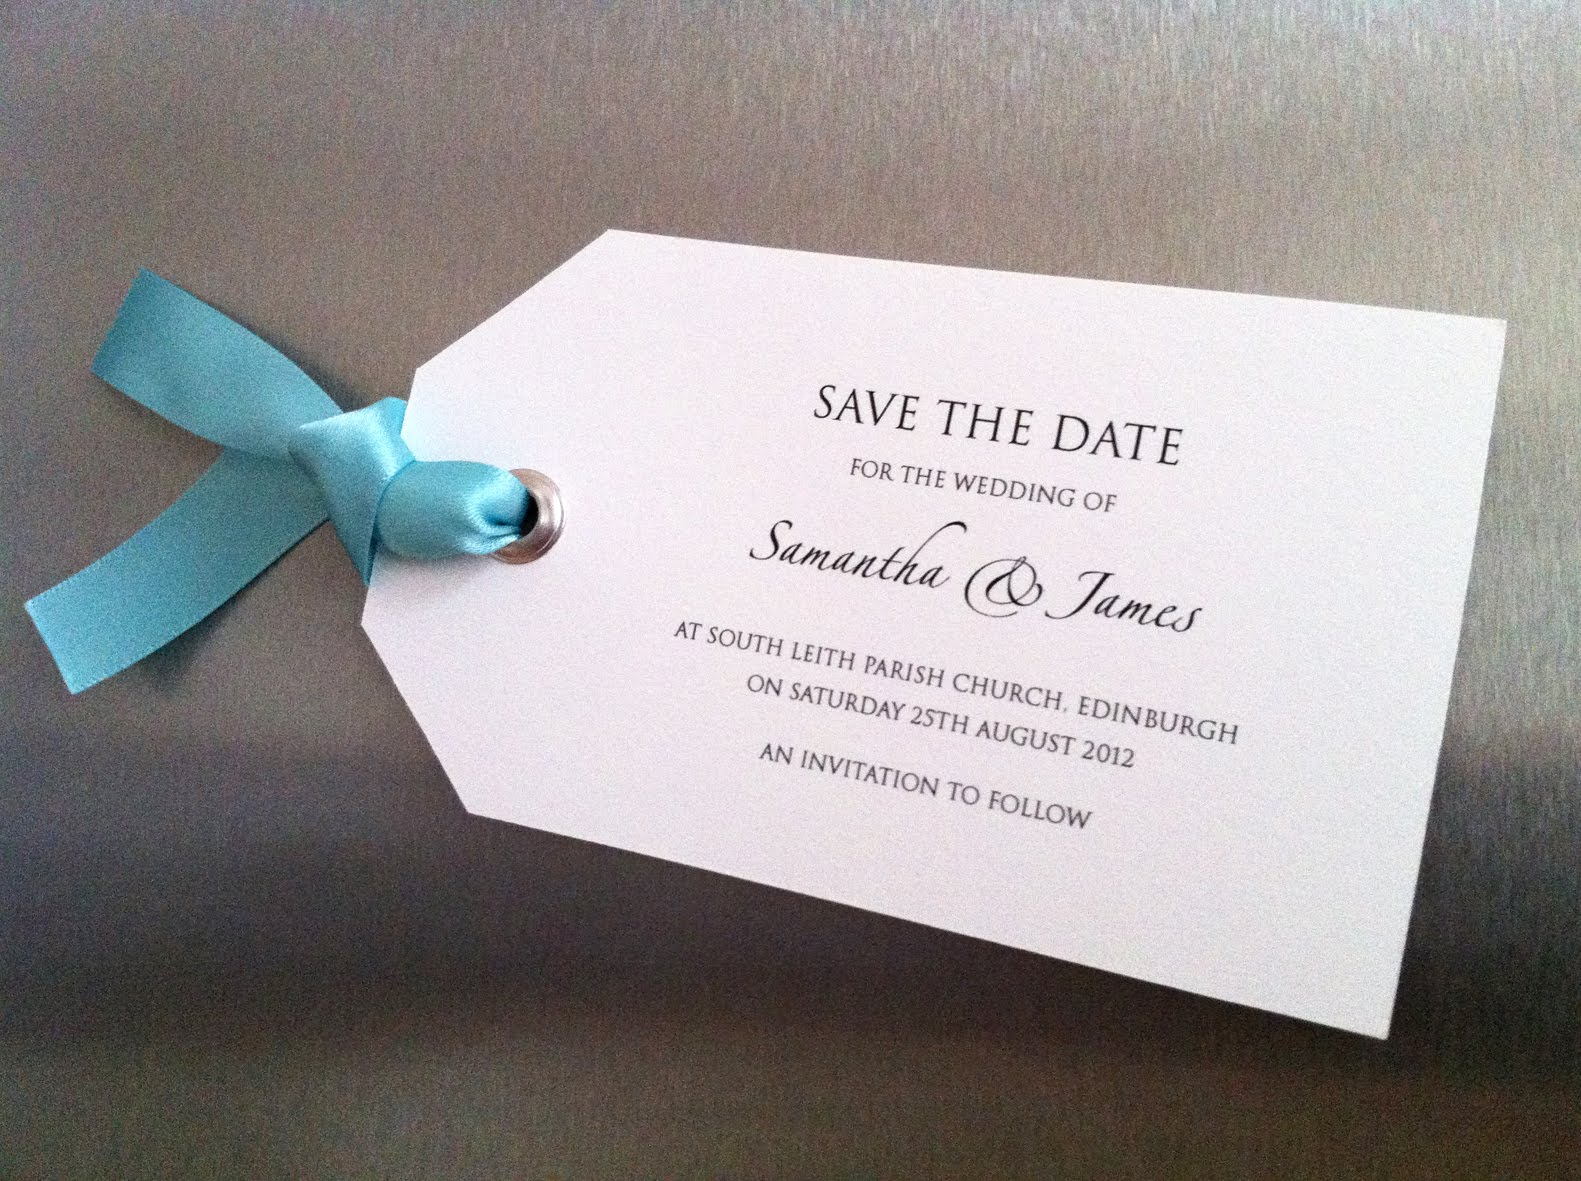 Save the date magnet | Welcome to the Twenty-Seven.Co.Uk Blog!